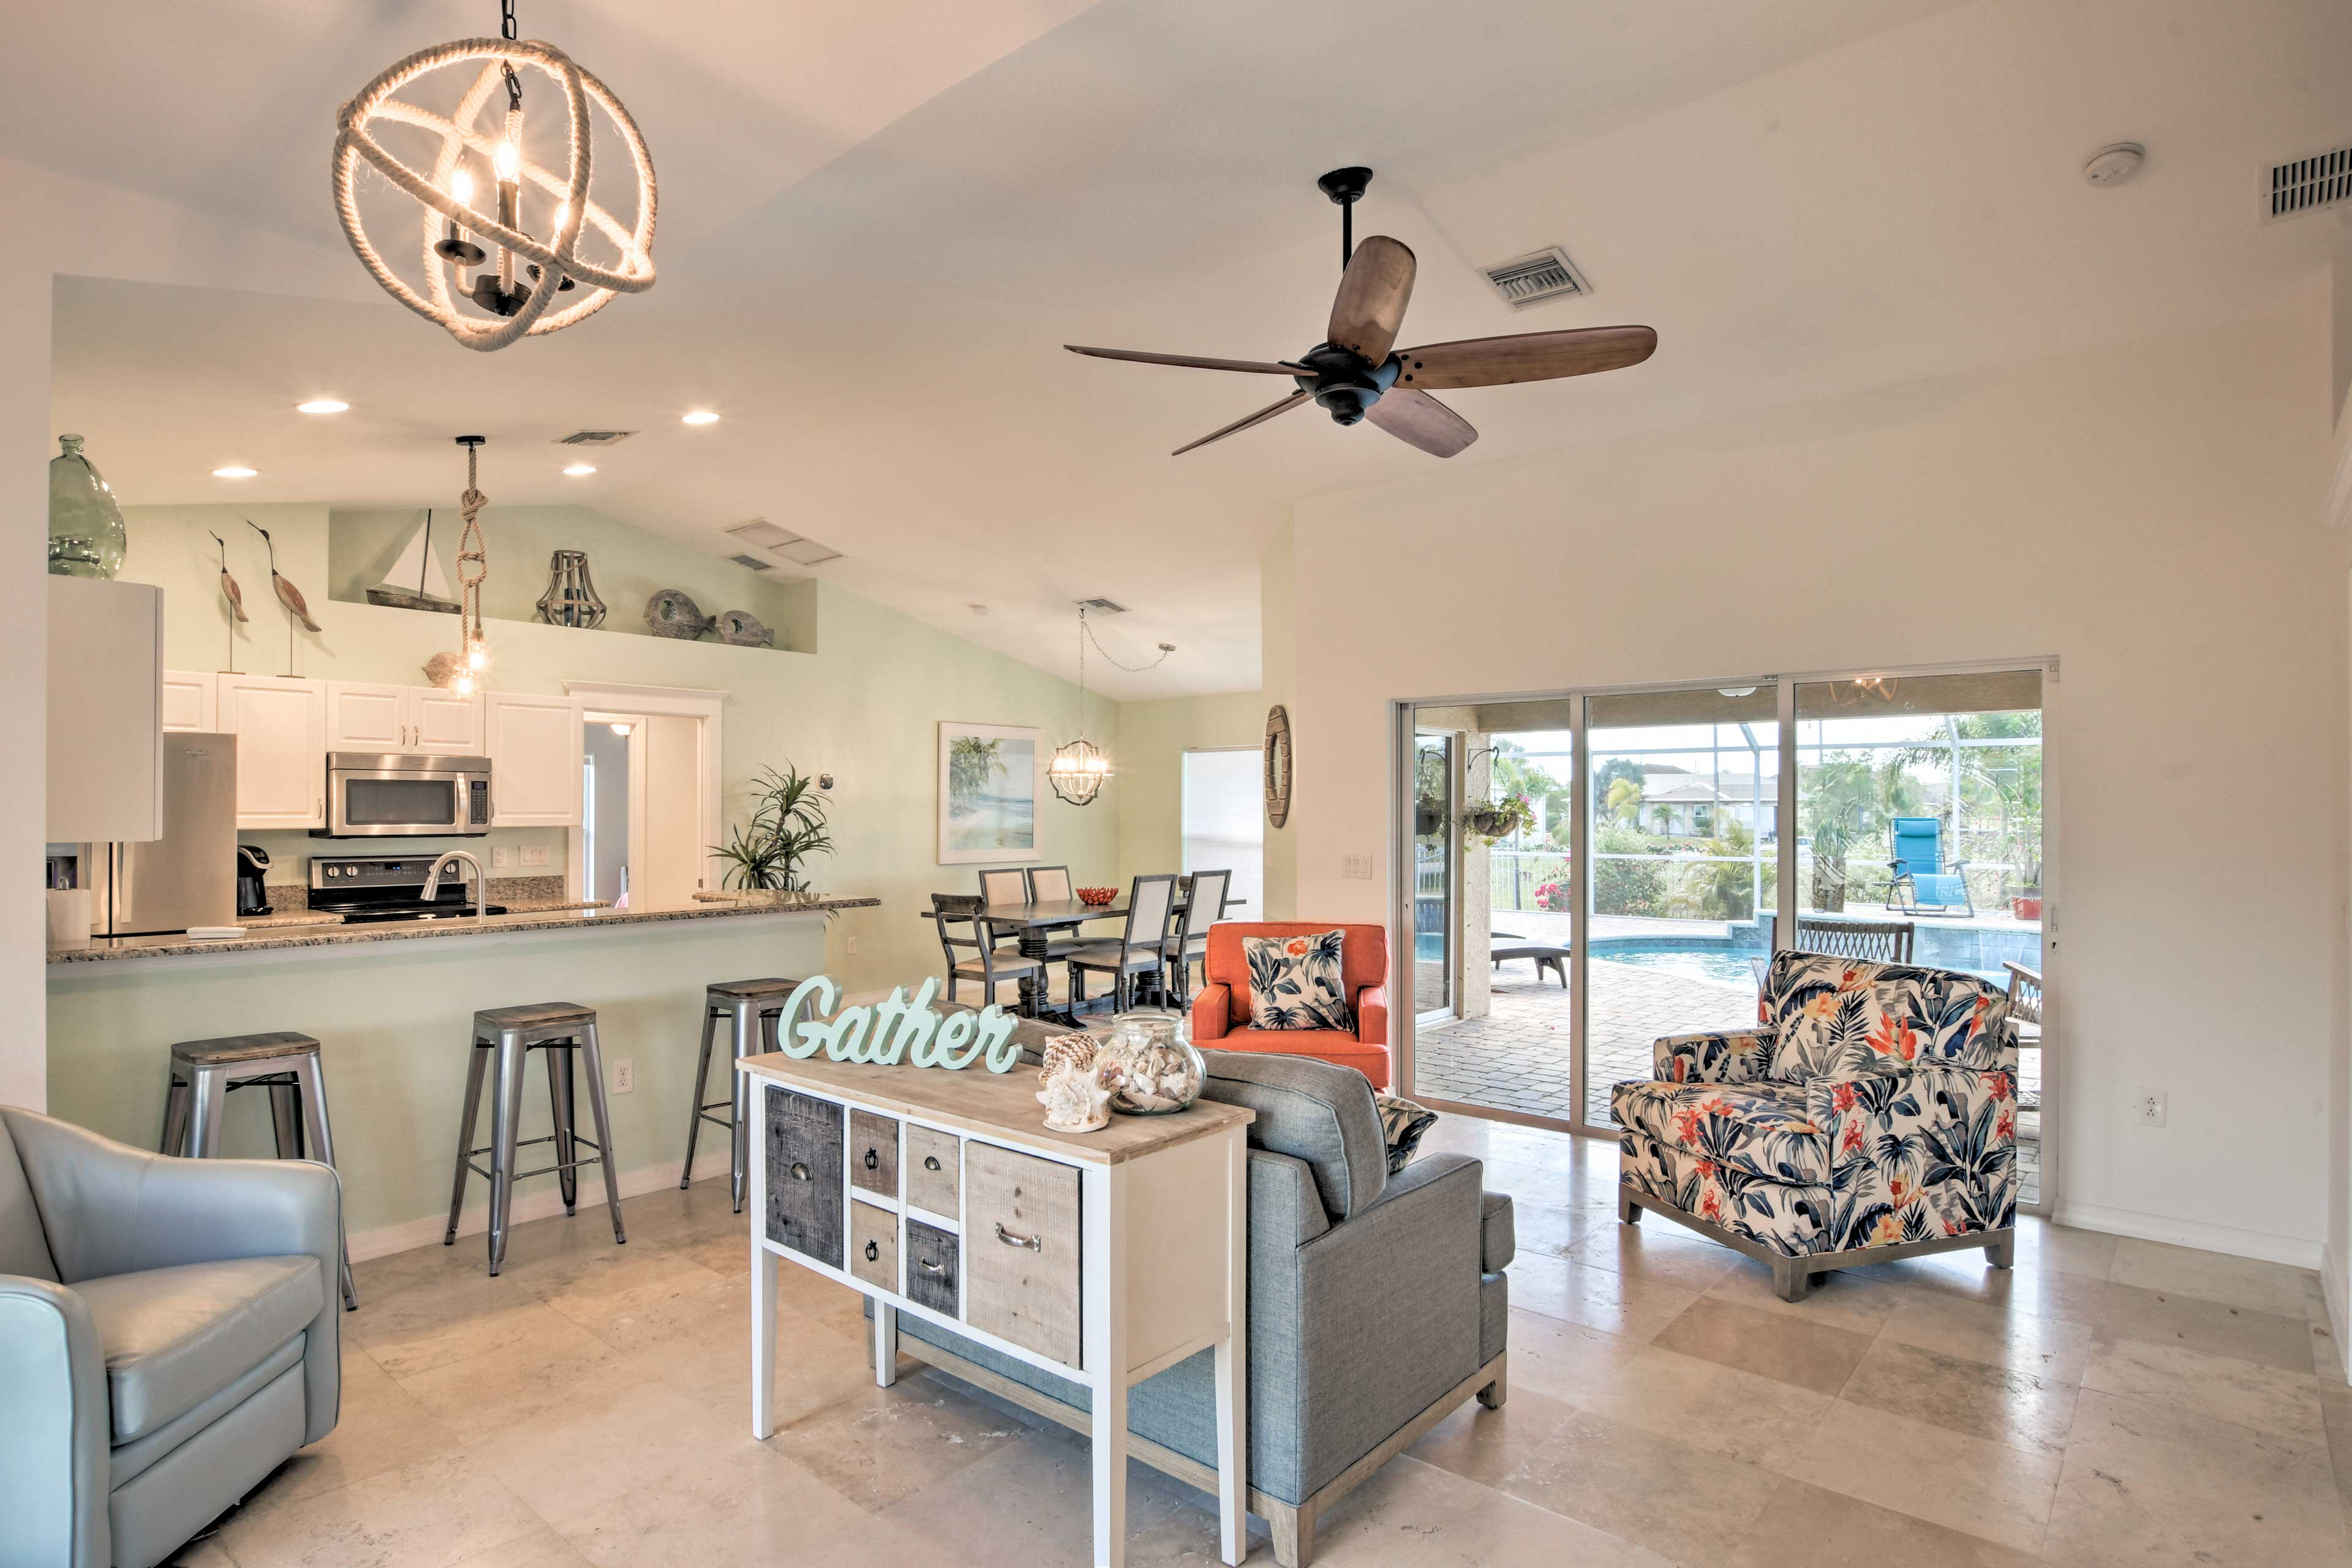 This 4-bedroom, 2-bath home can host a family of 8!